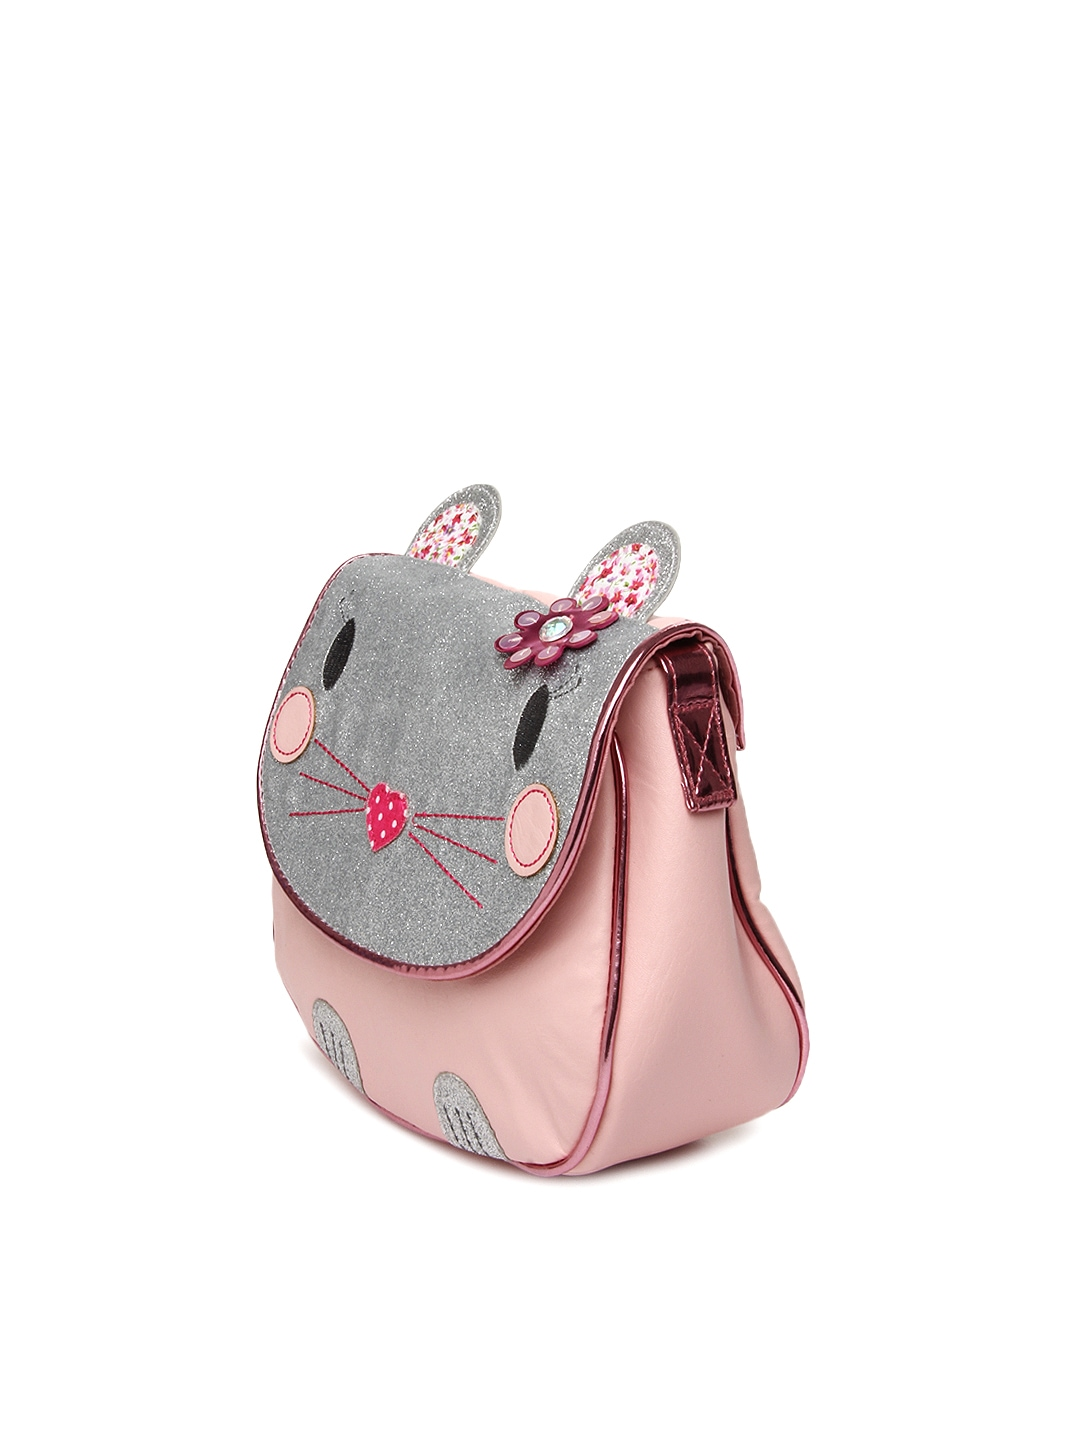 Buy Accessorize Girls Pink Sling Bag (multicolor) 1280646 for kids ...